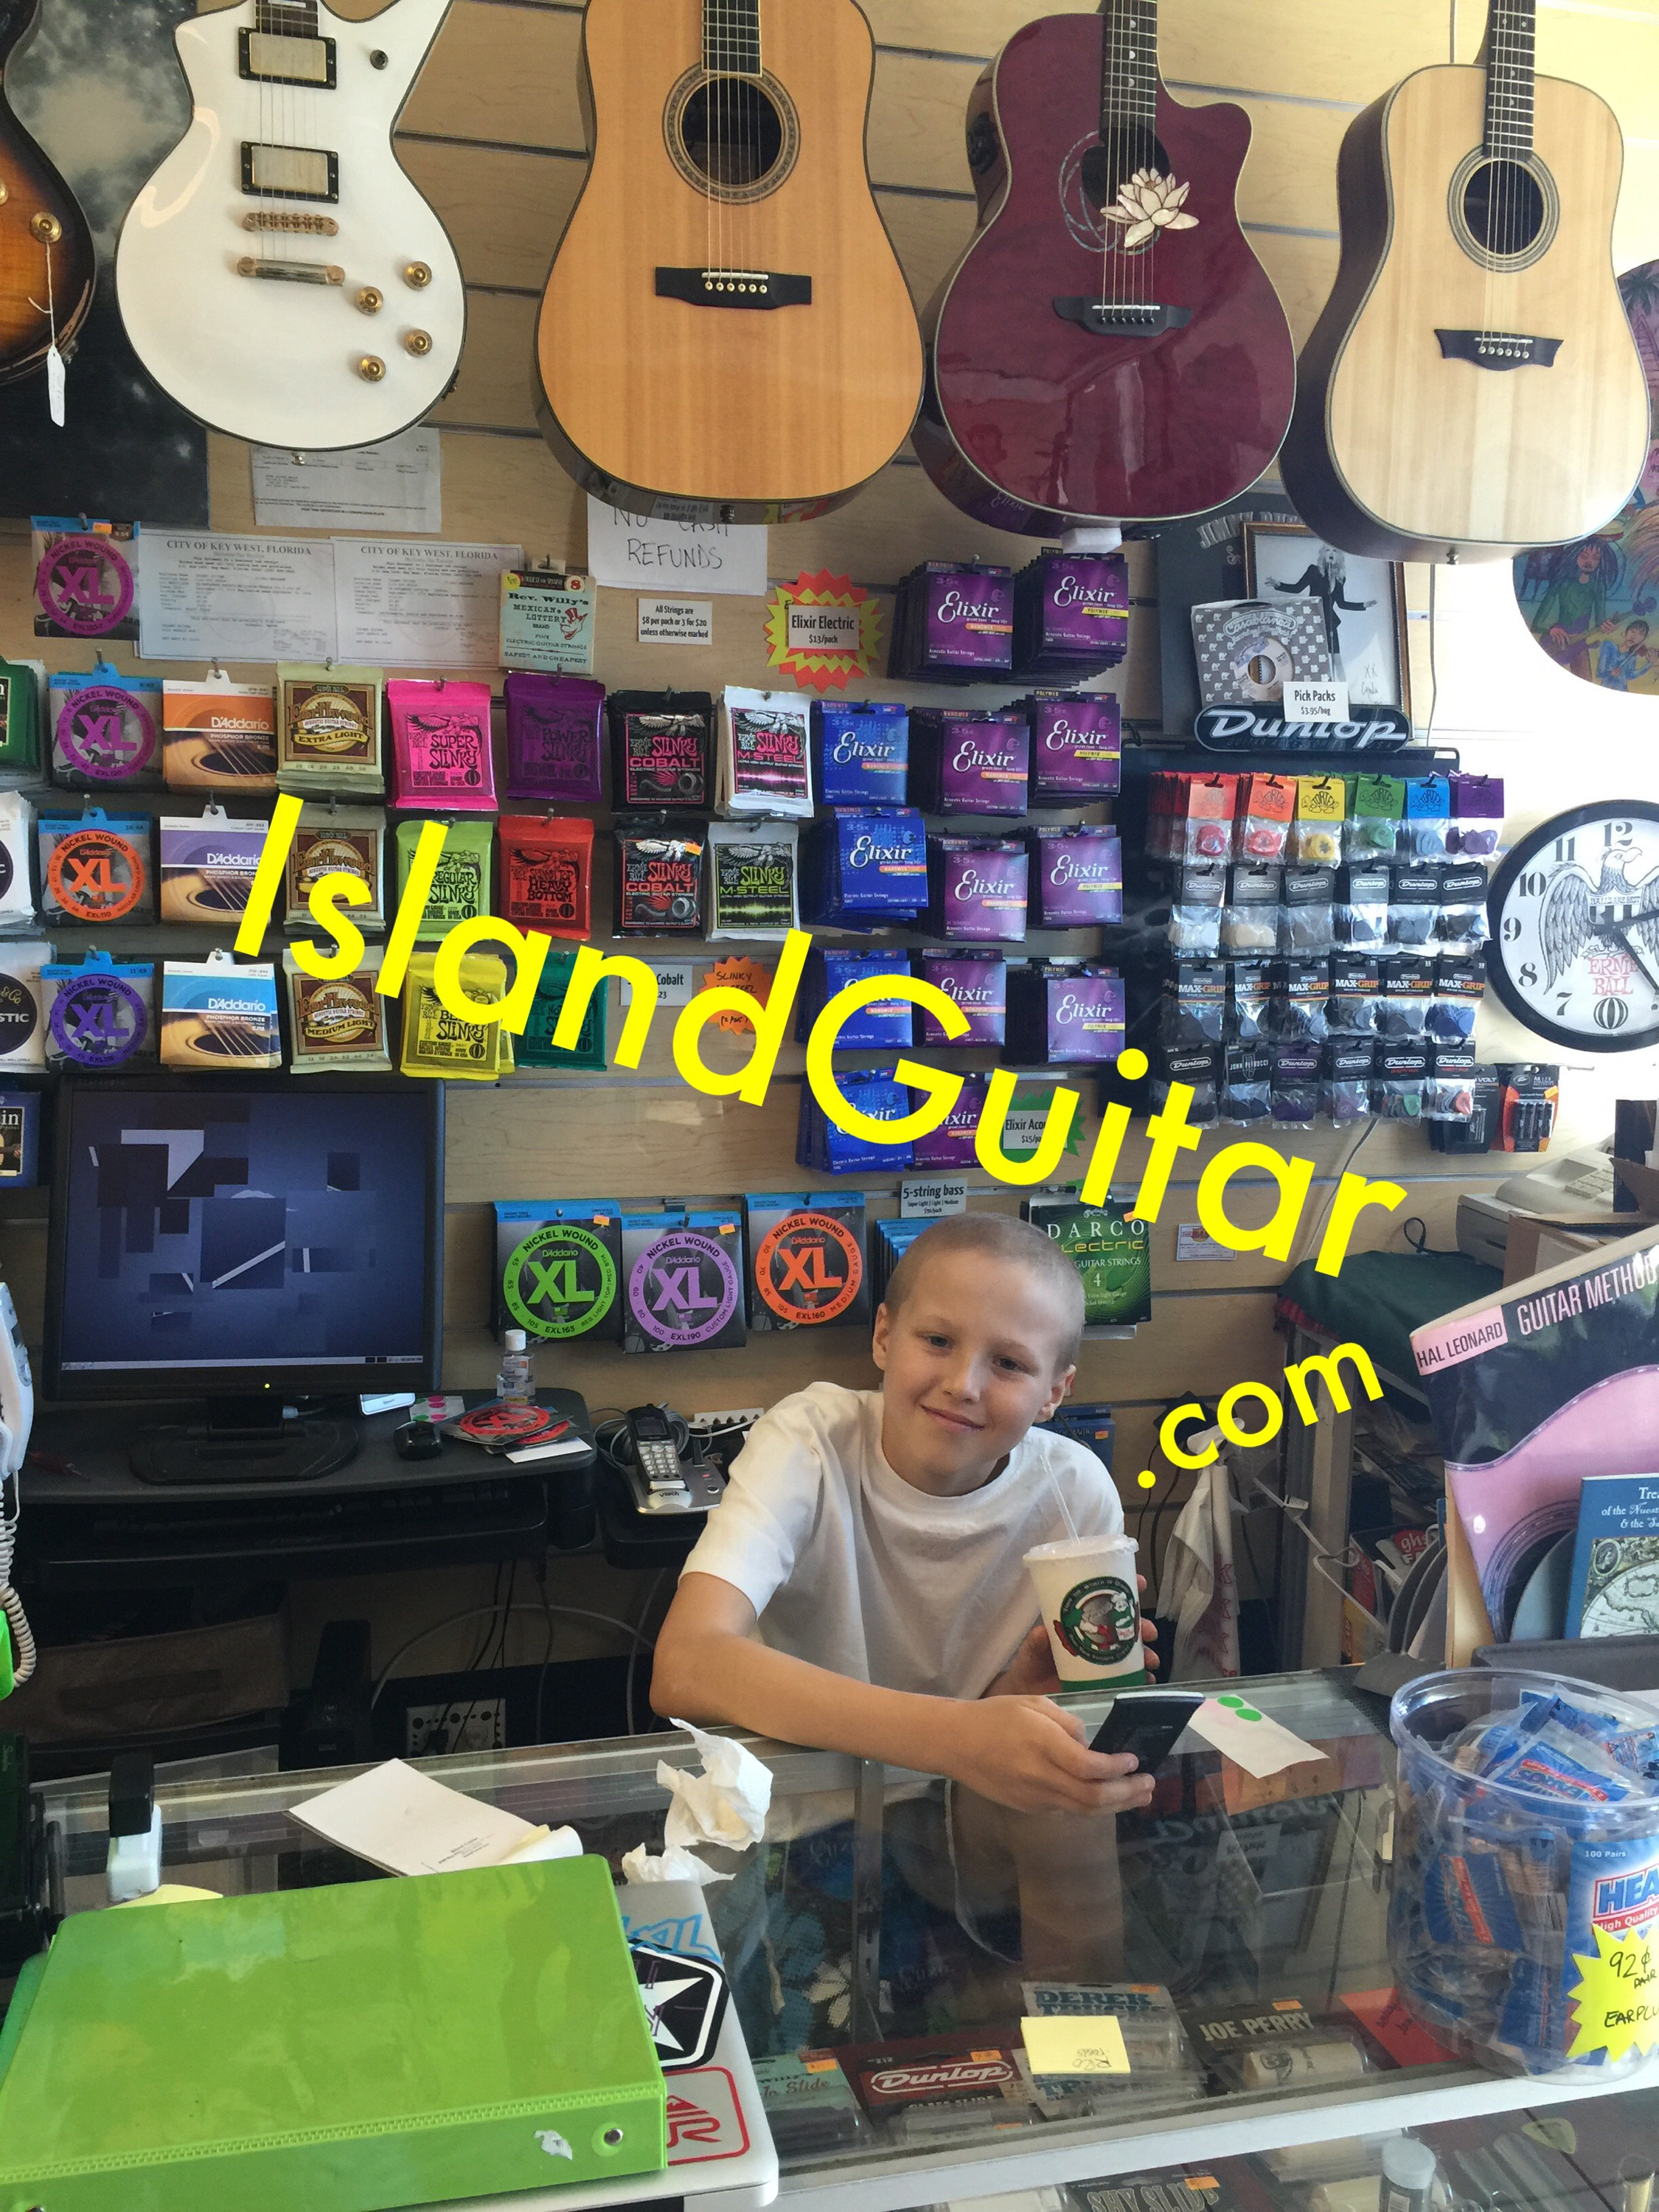 our family music store island guitar aka bone island music lessons now open buy sell trade. Black Bedroom Furniture Sets. Home Design Ideas